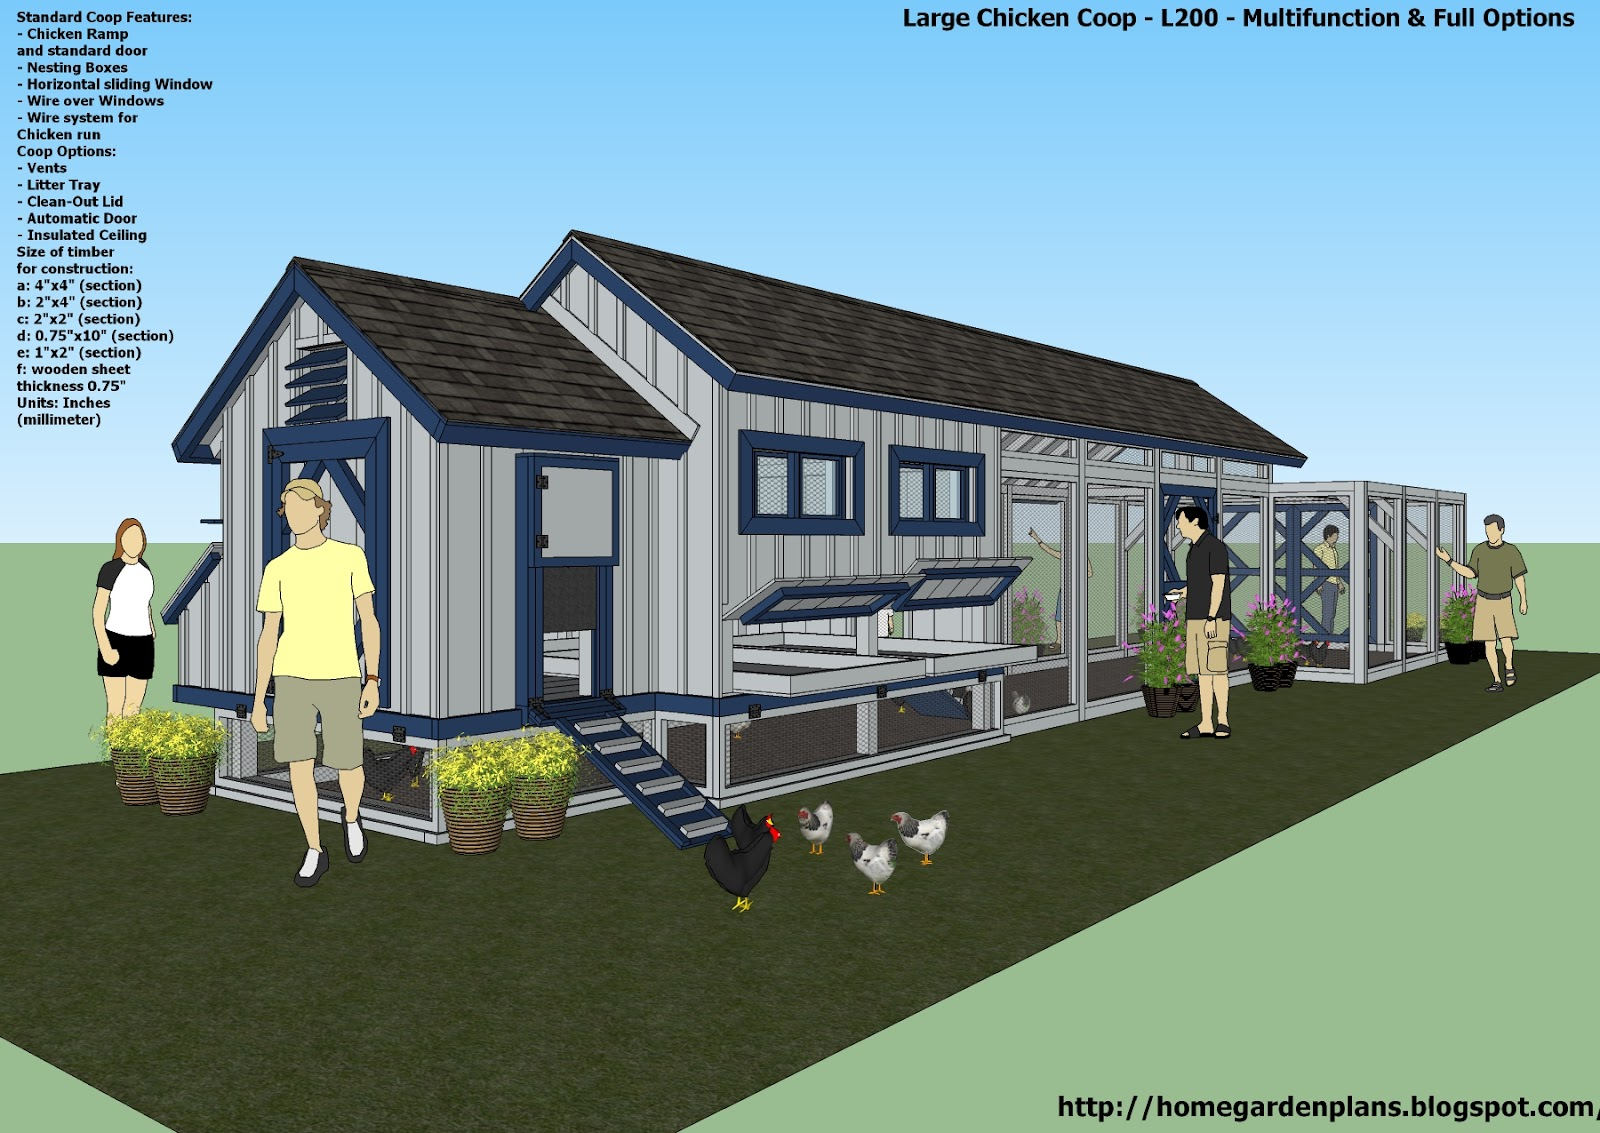 Home garden plans l200 large chicken coop plans how for Large chicken house